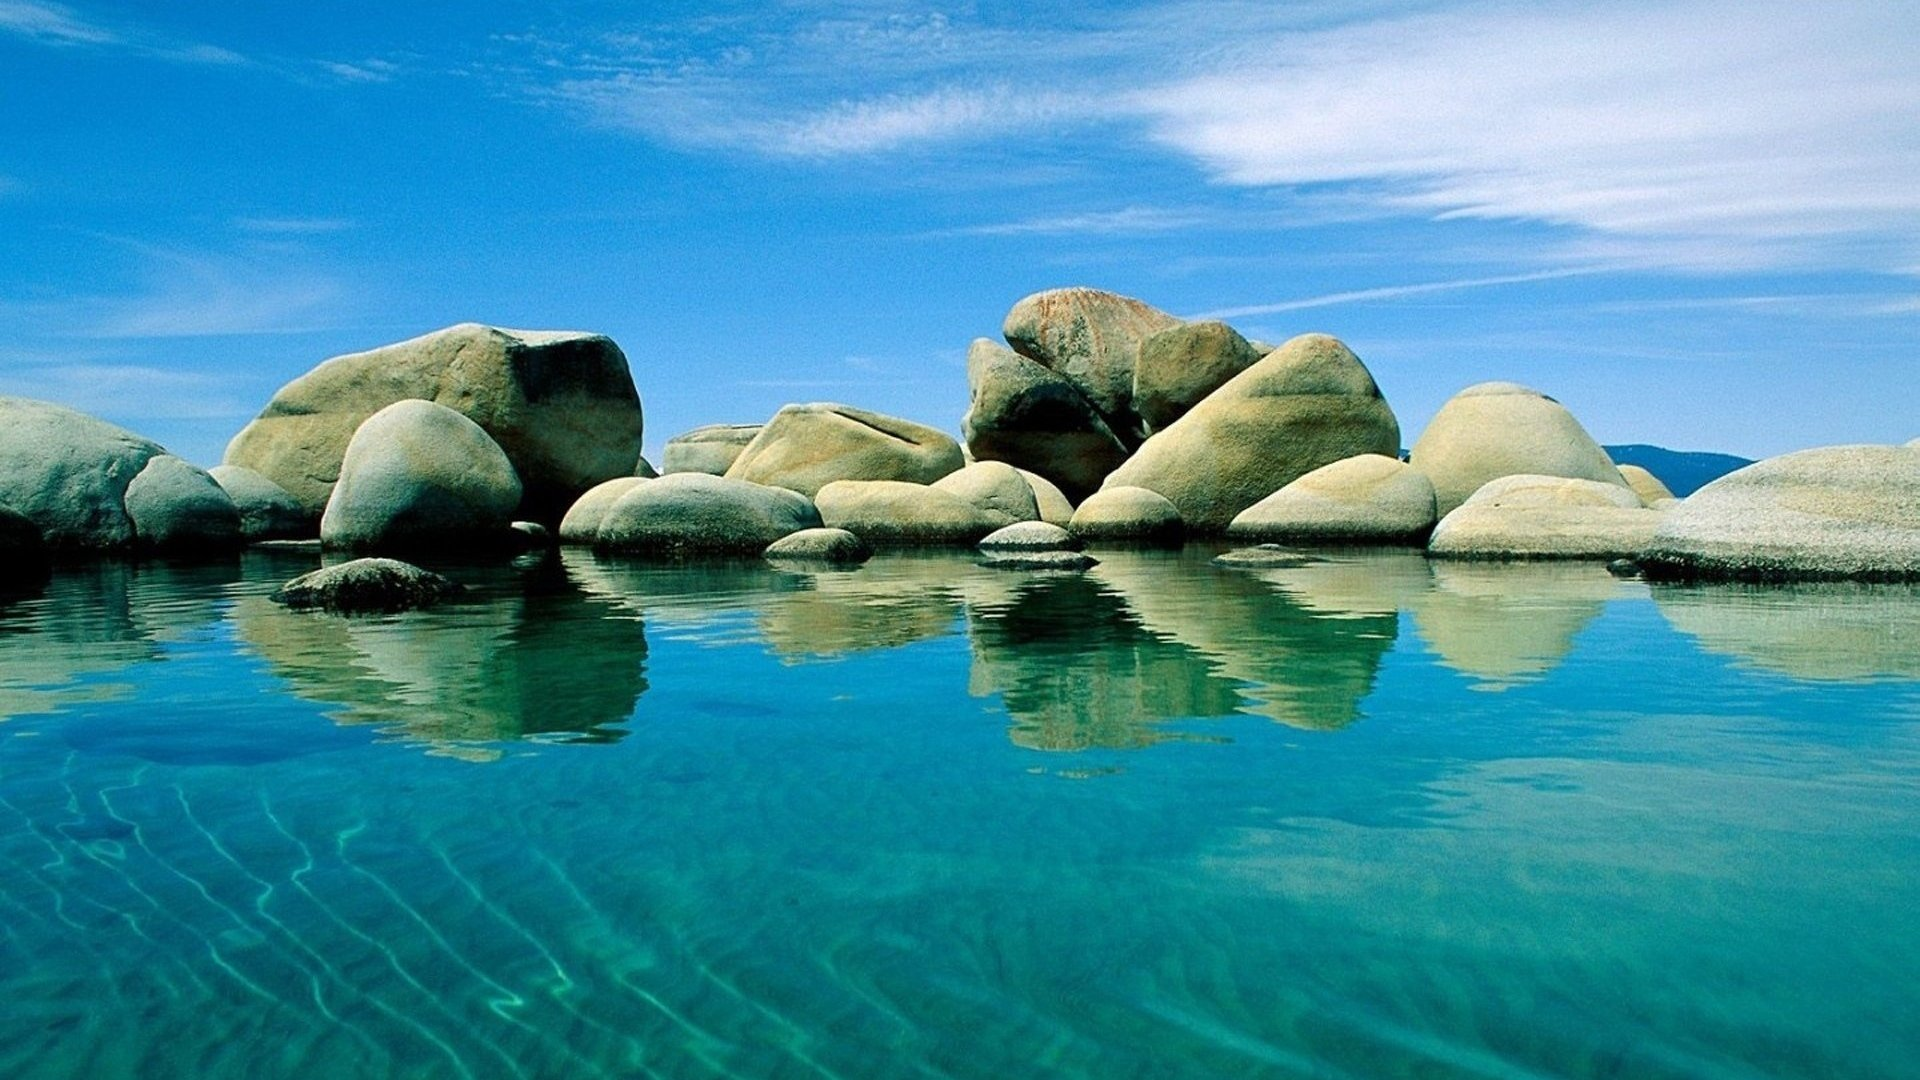 Download 1920x1080 HD Wallpaper adriatic sea stone clear water 1920x1080